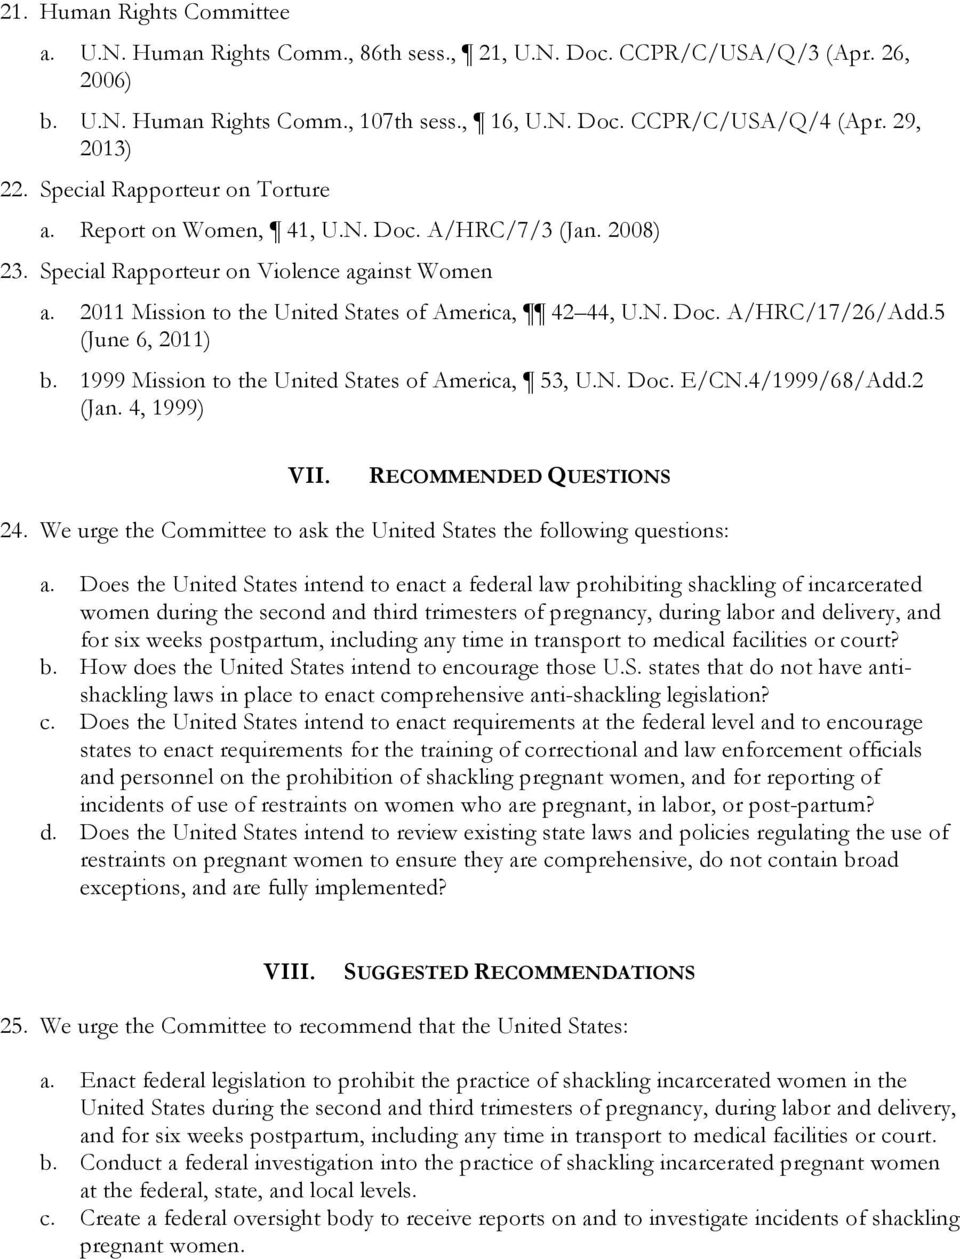 2011 Mission to the United States of America, 42 44, U.N. Doc. A/HRC/17/26/Add.5 (June 6, 2011) b. 1999 Mission to the United States of America, 53, U.N. Doc. E/CN.4/1999/68/Add.2 (Jan. 4, 1999) VII.